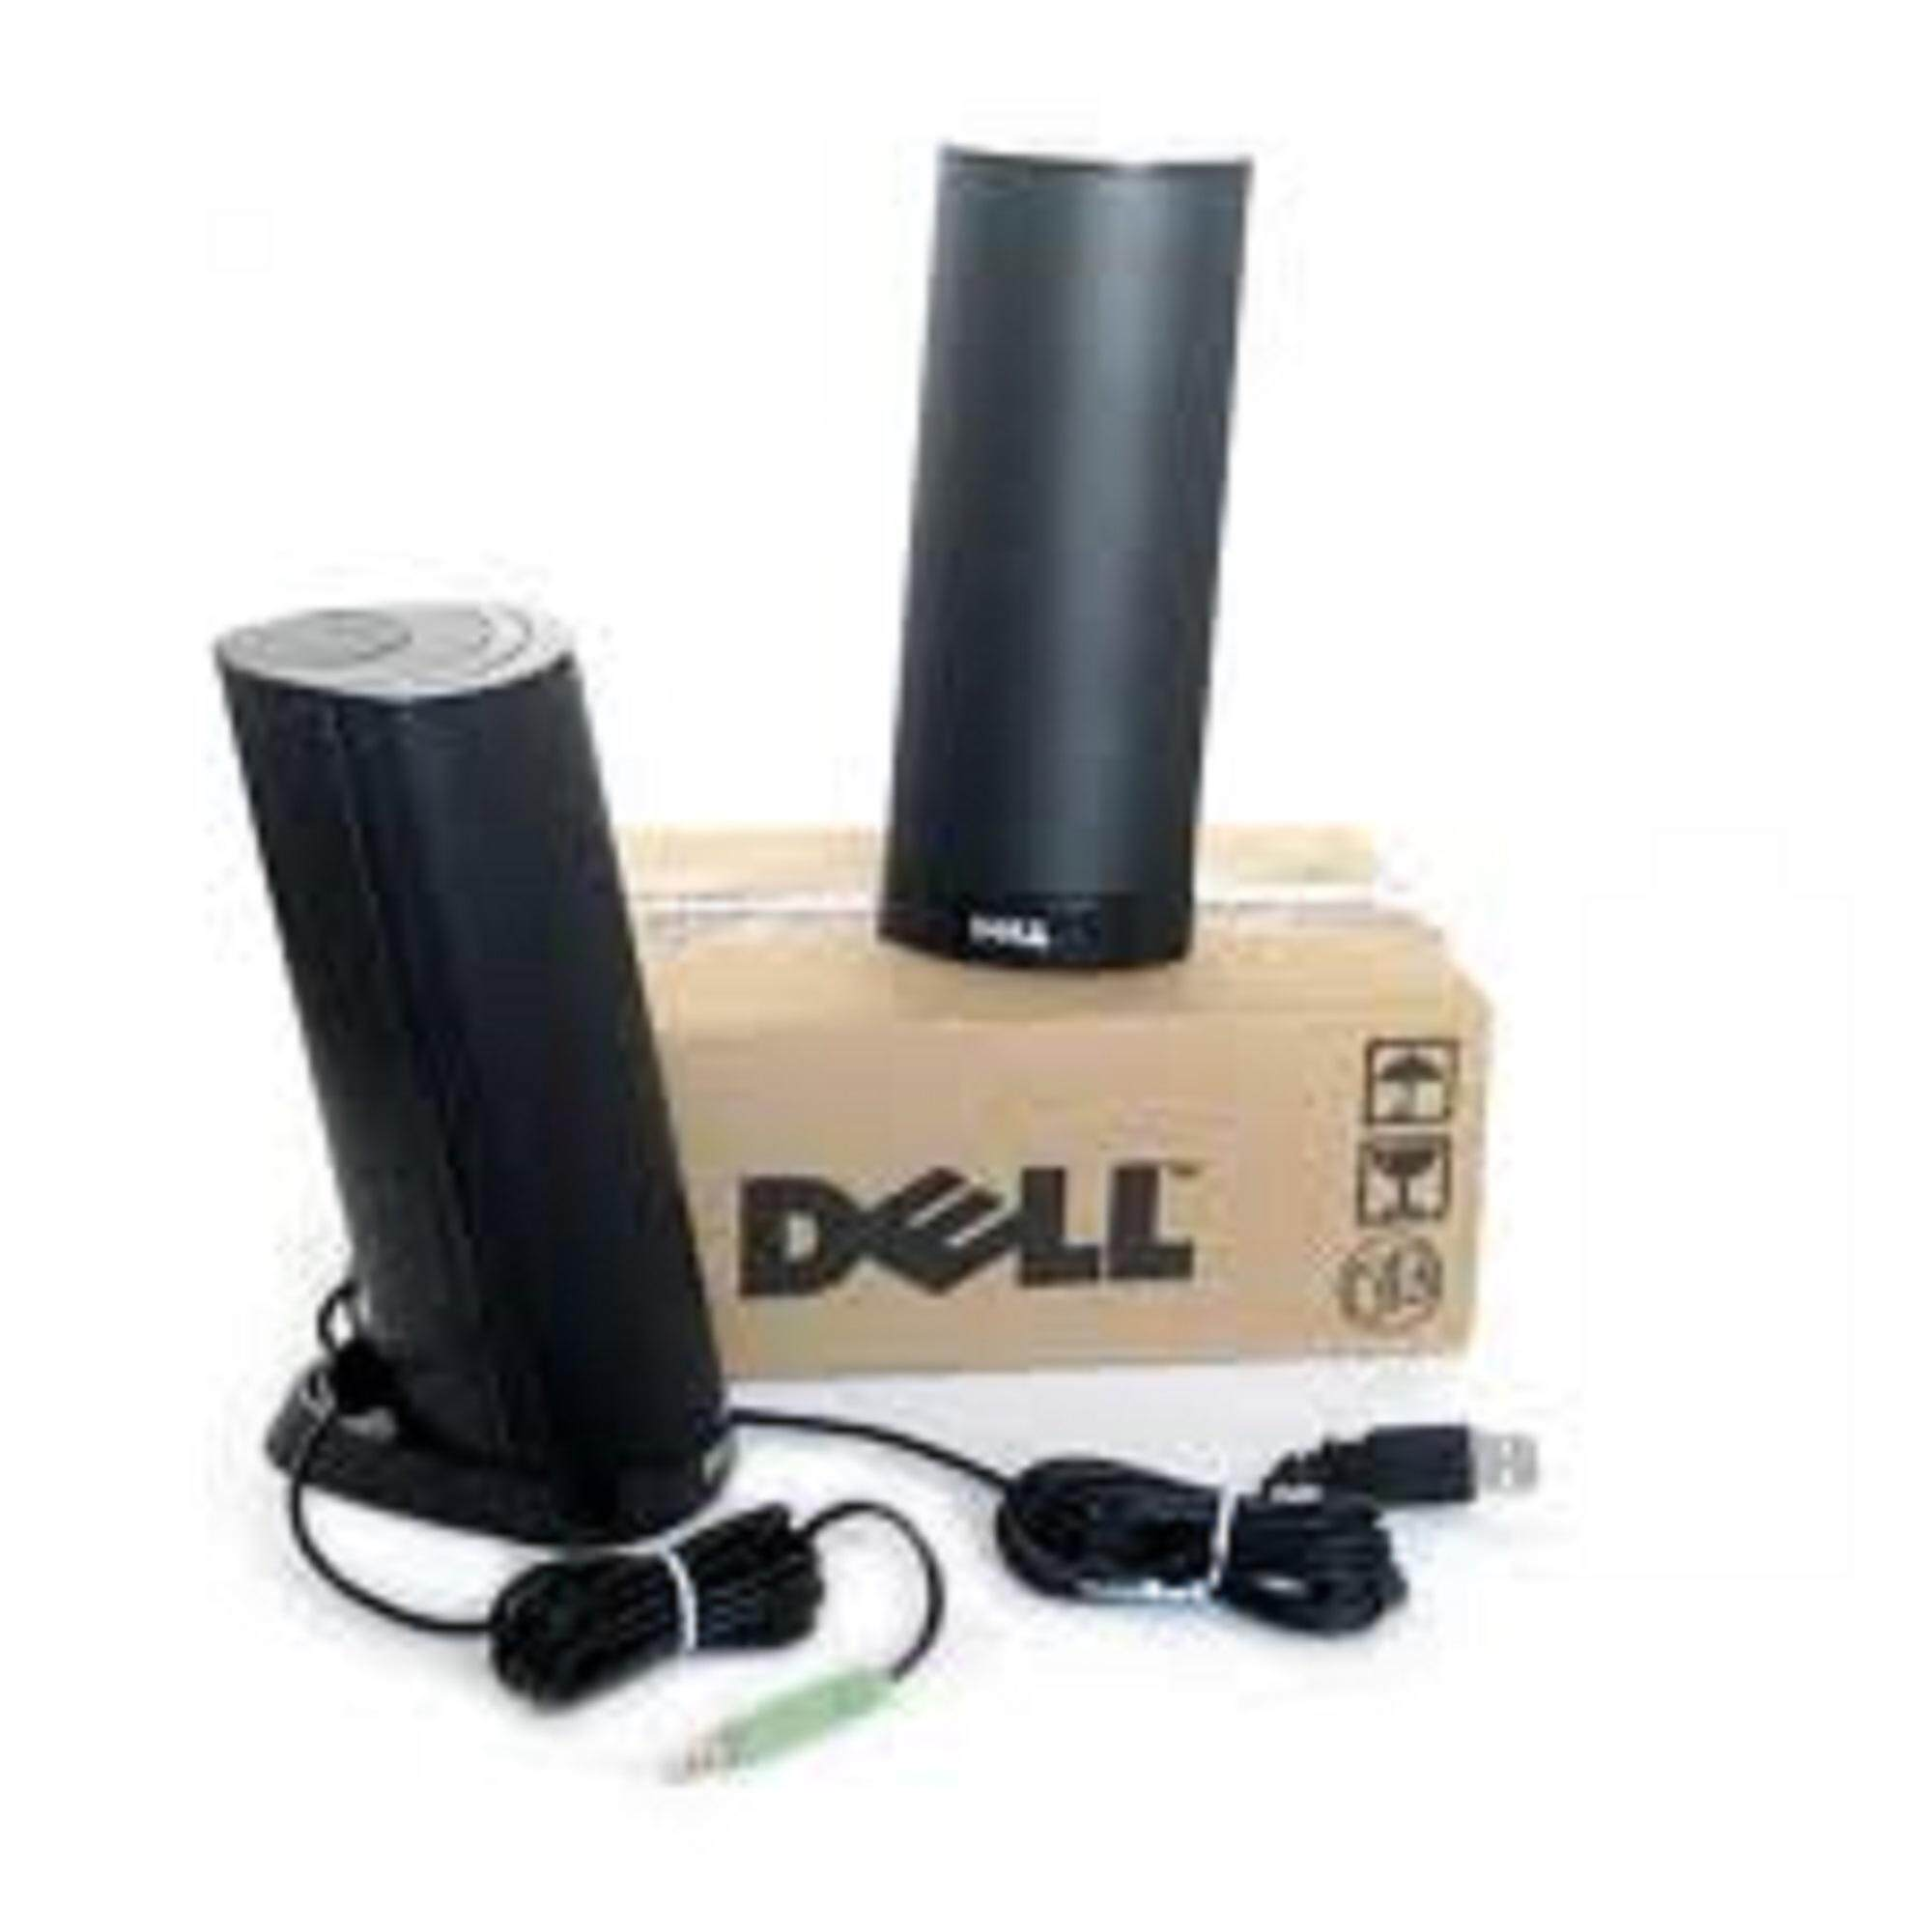 Original Dell AX210 USB Compact 1.2W Stereo Speaker System (Black) Malaysia